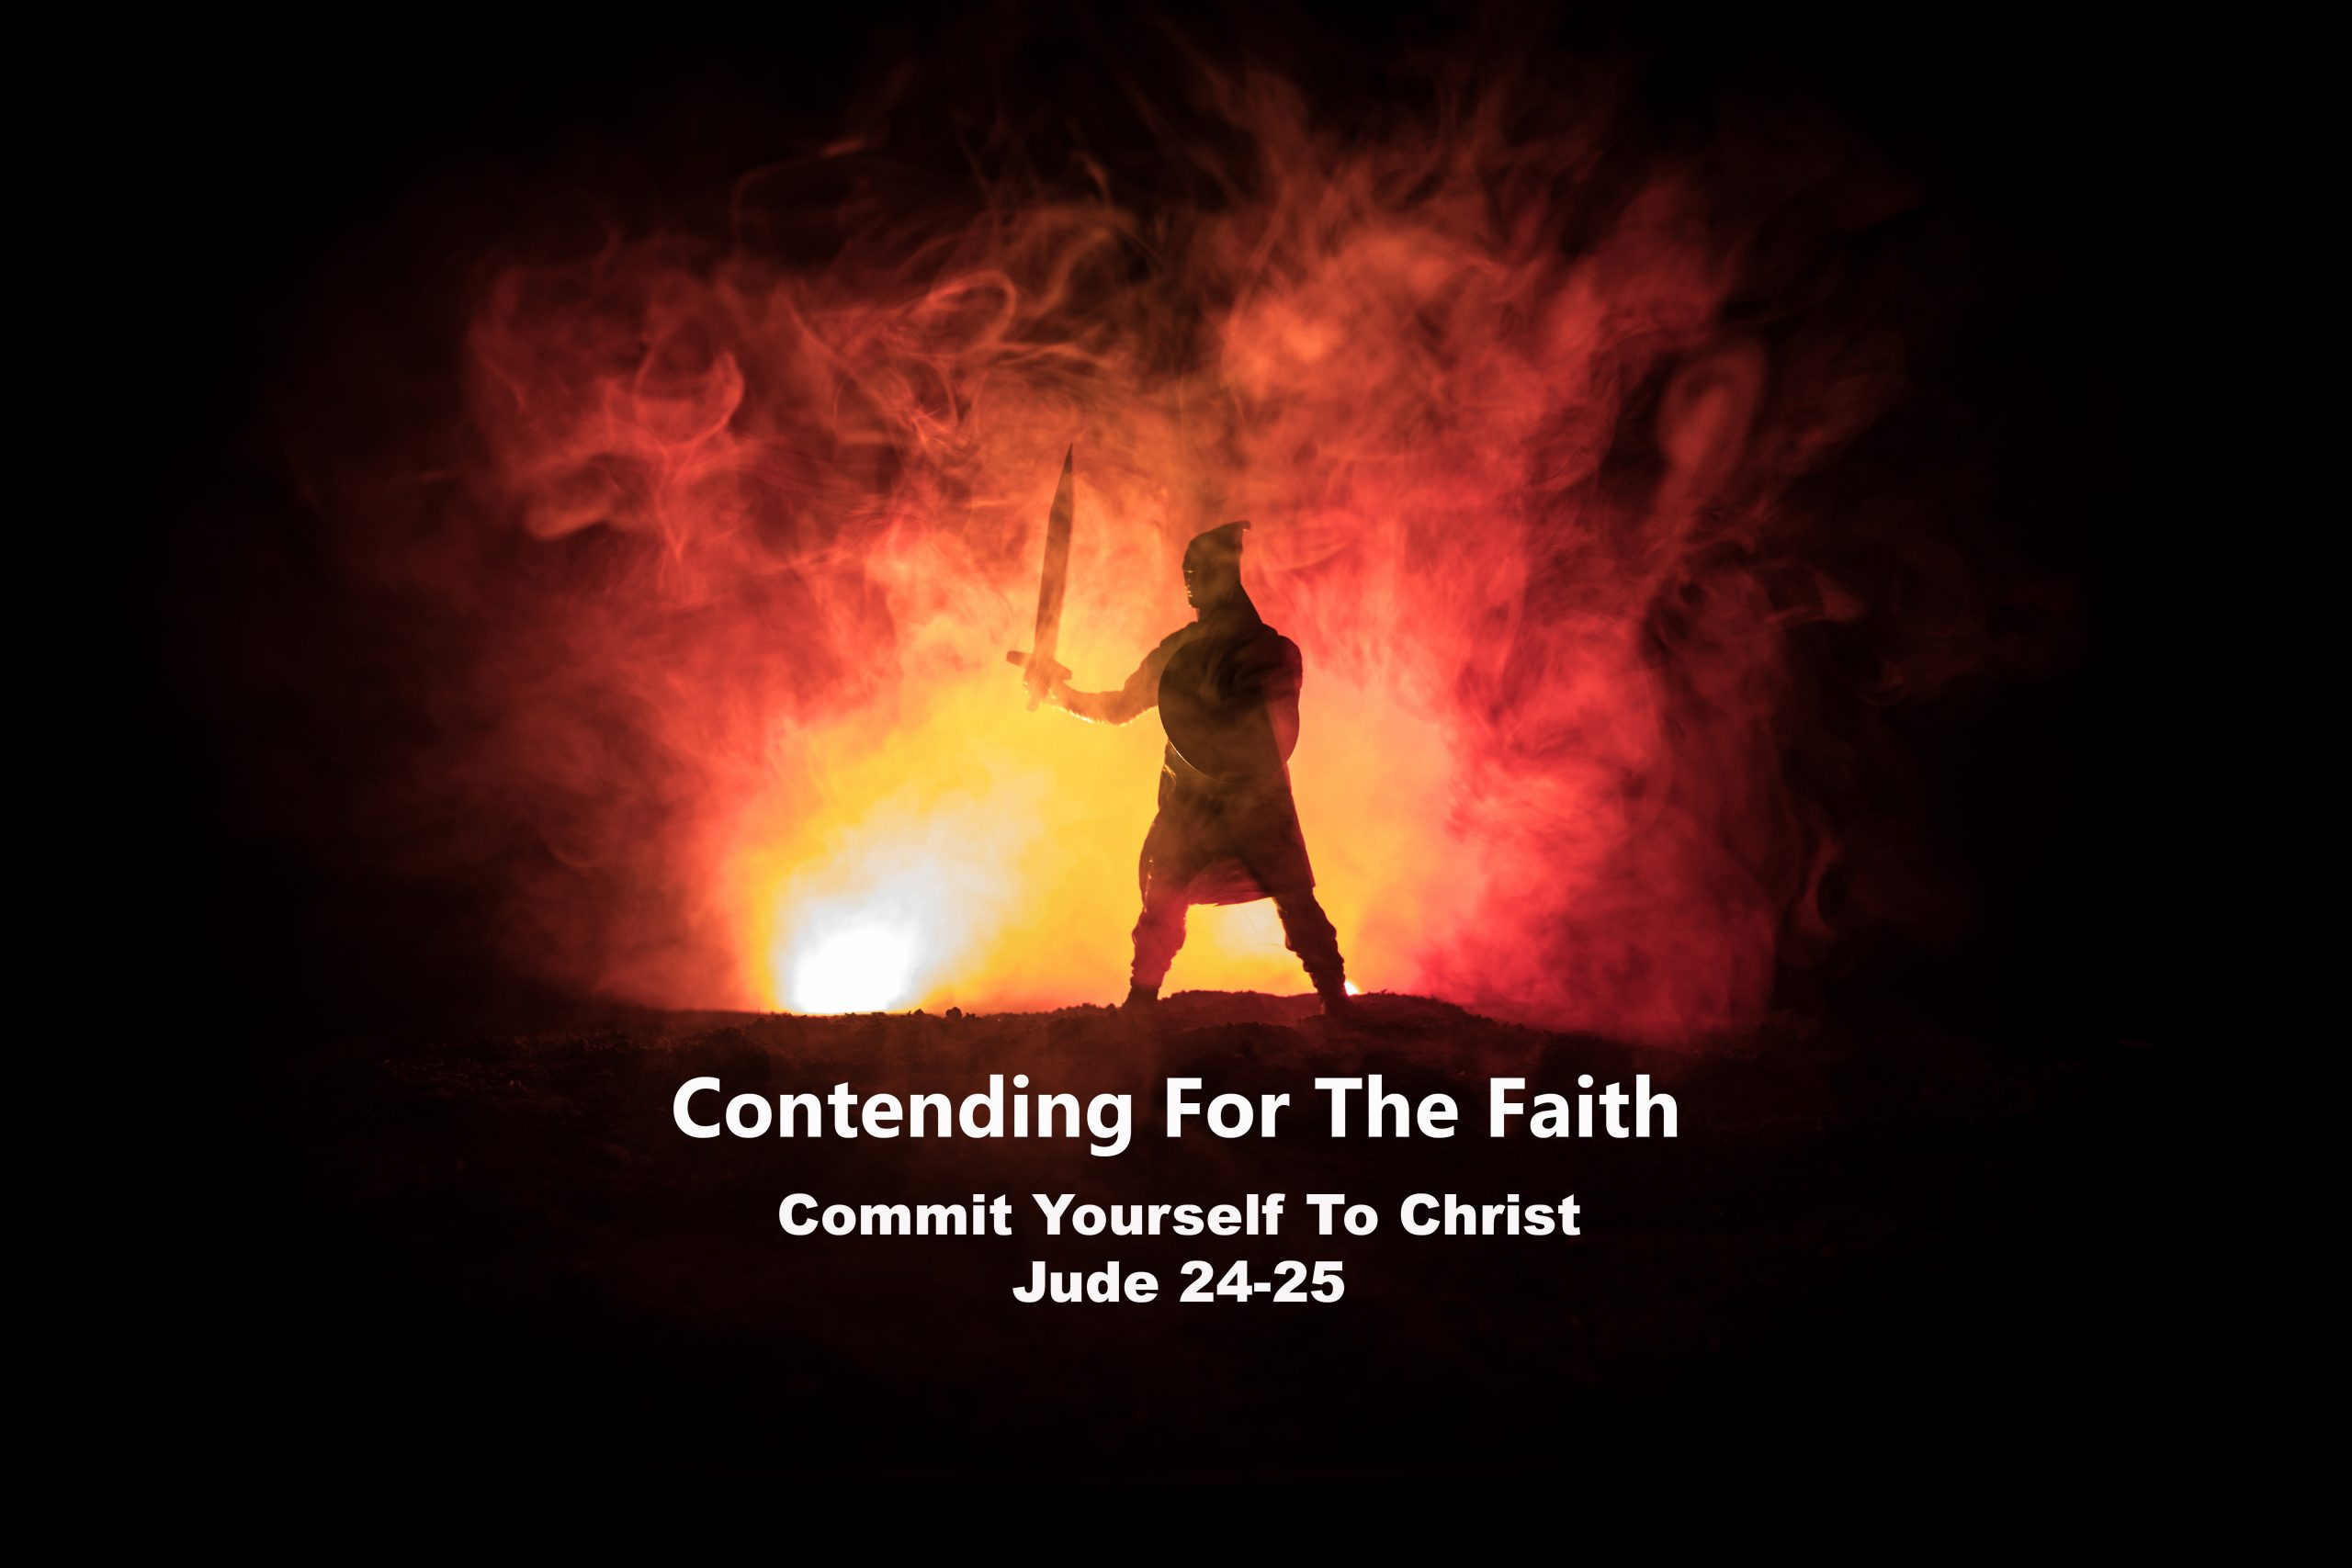 Jude 24-25 Commit Yourself To Christ